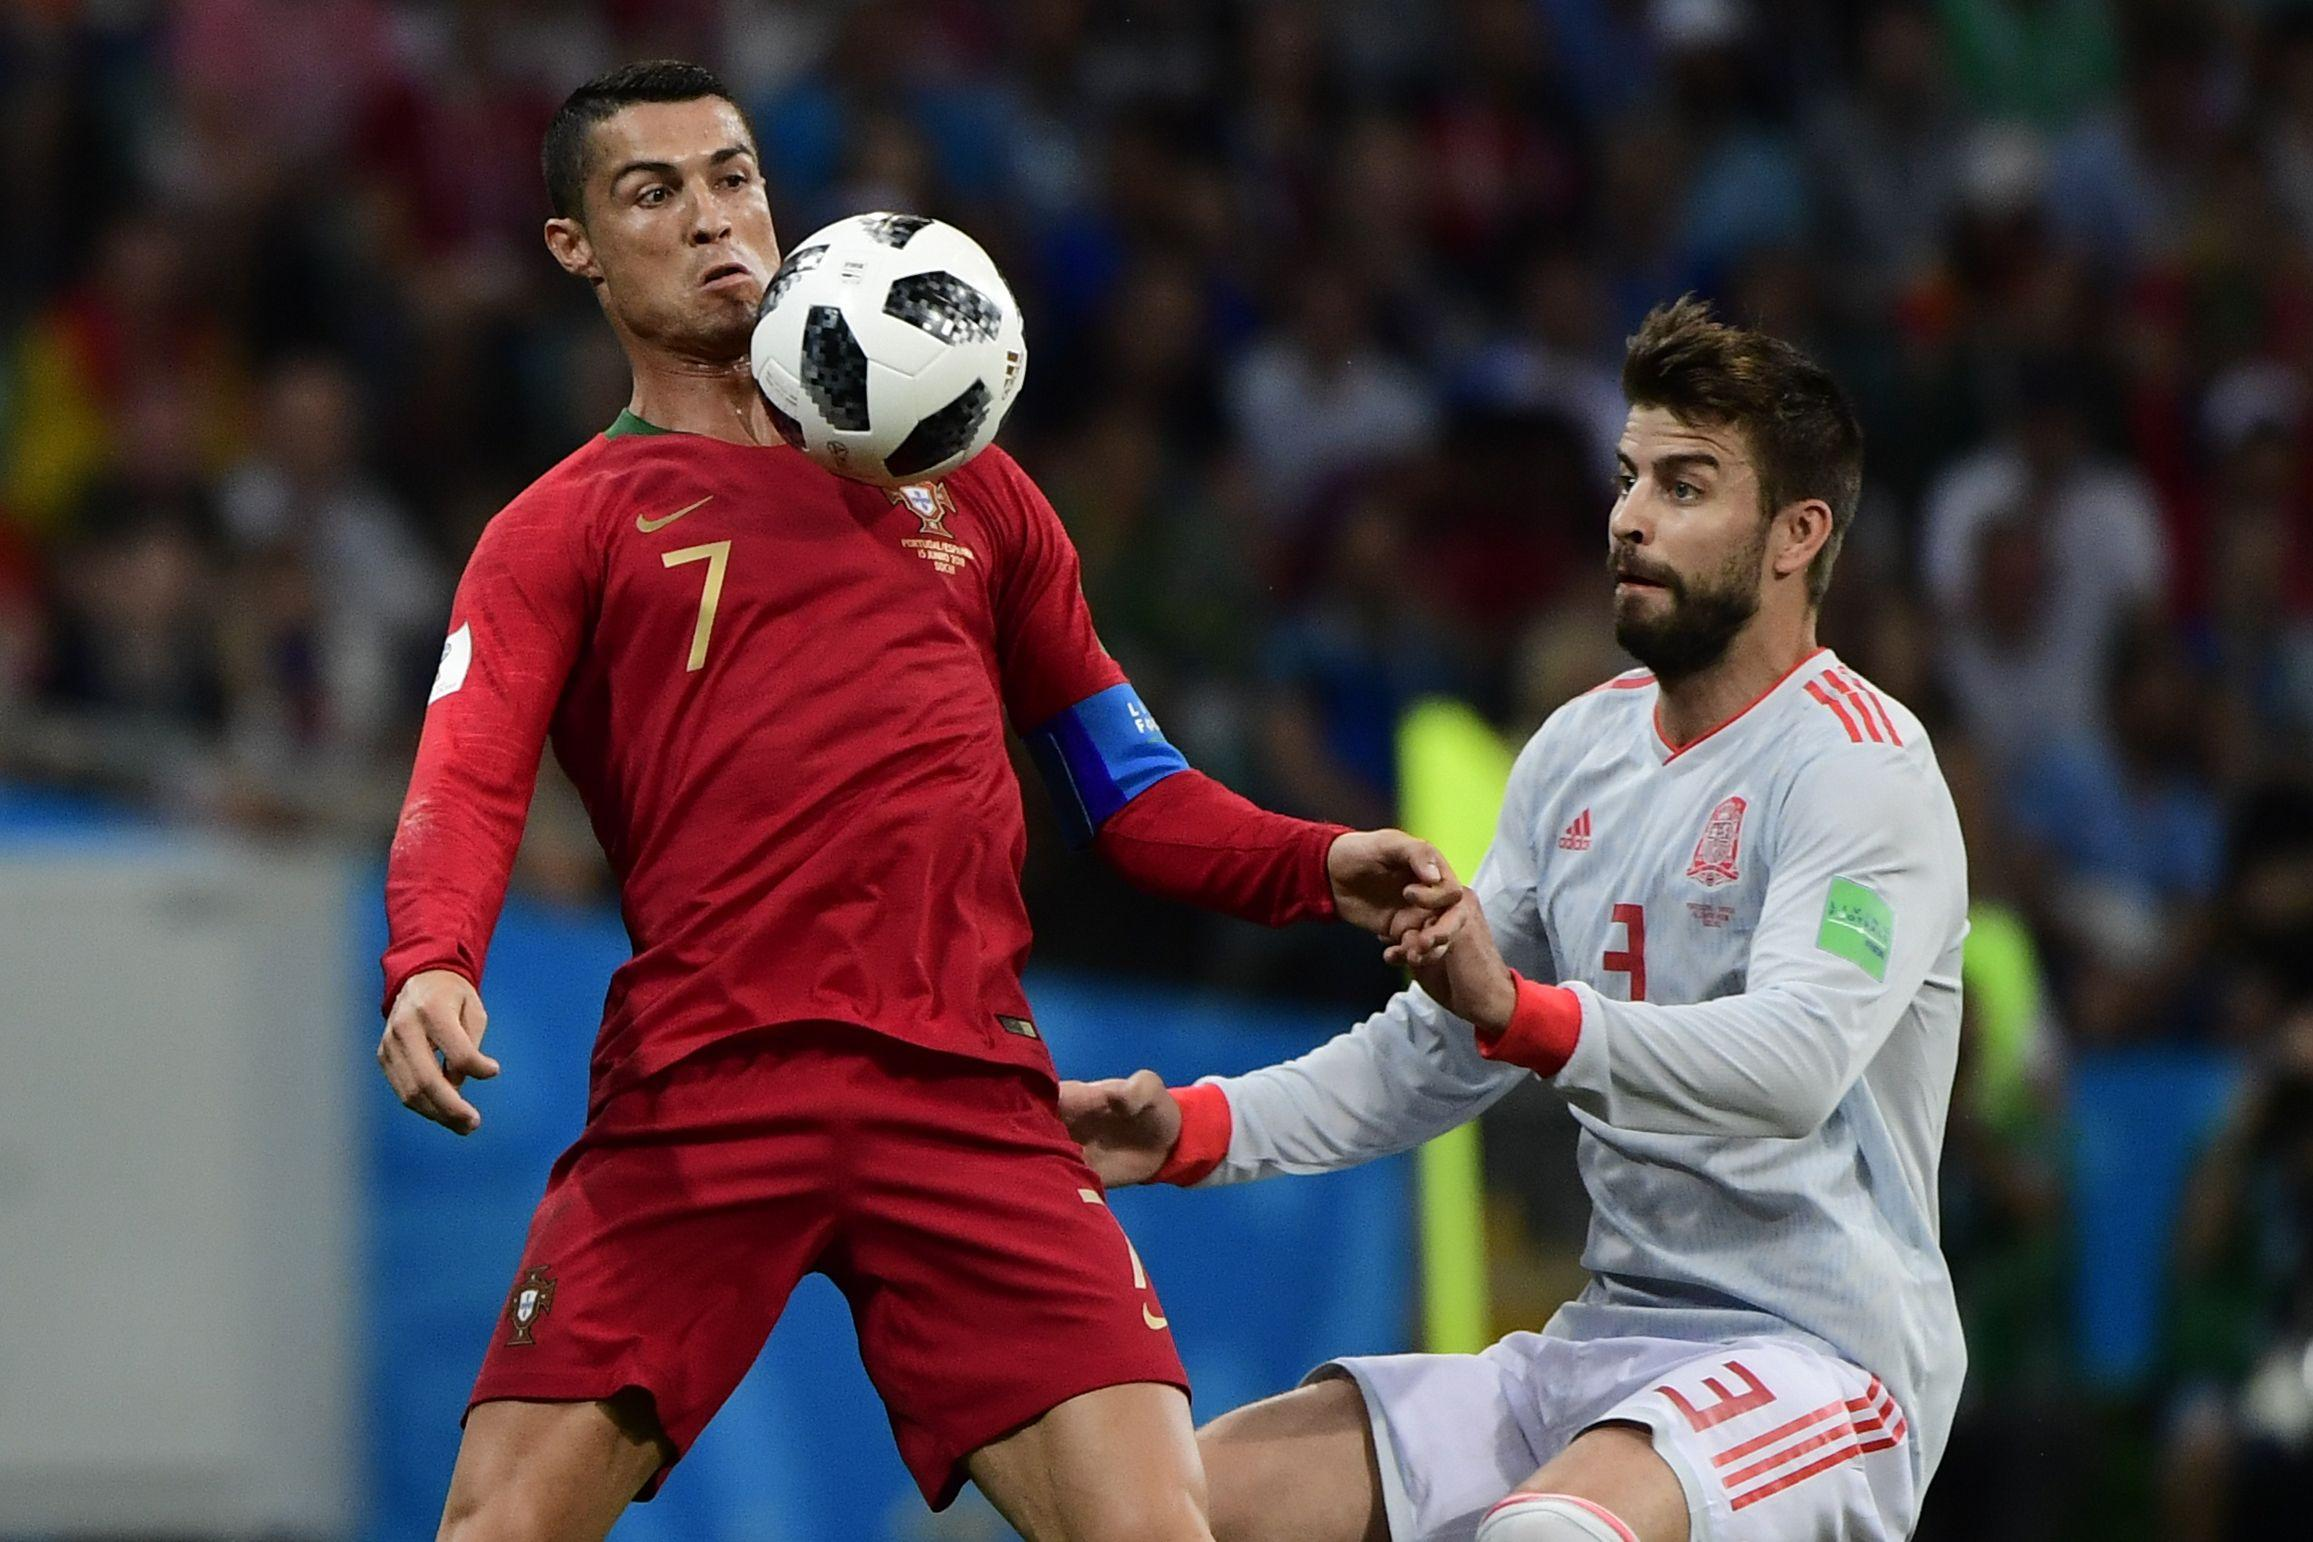 World Cup 2018: Spain's Gerard Pique says Cristiano Ronaldo 'has a habit of throwing himself to the ground'